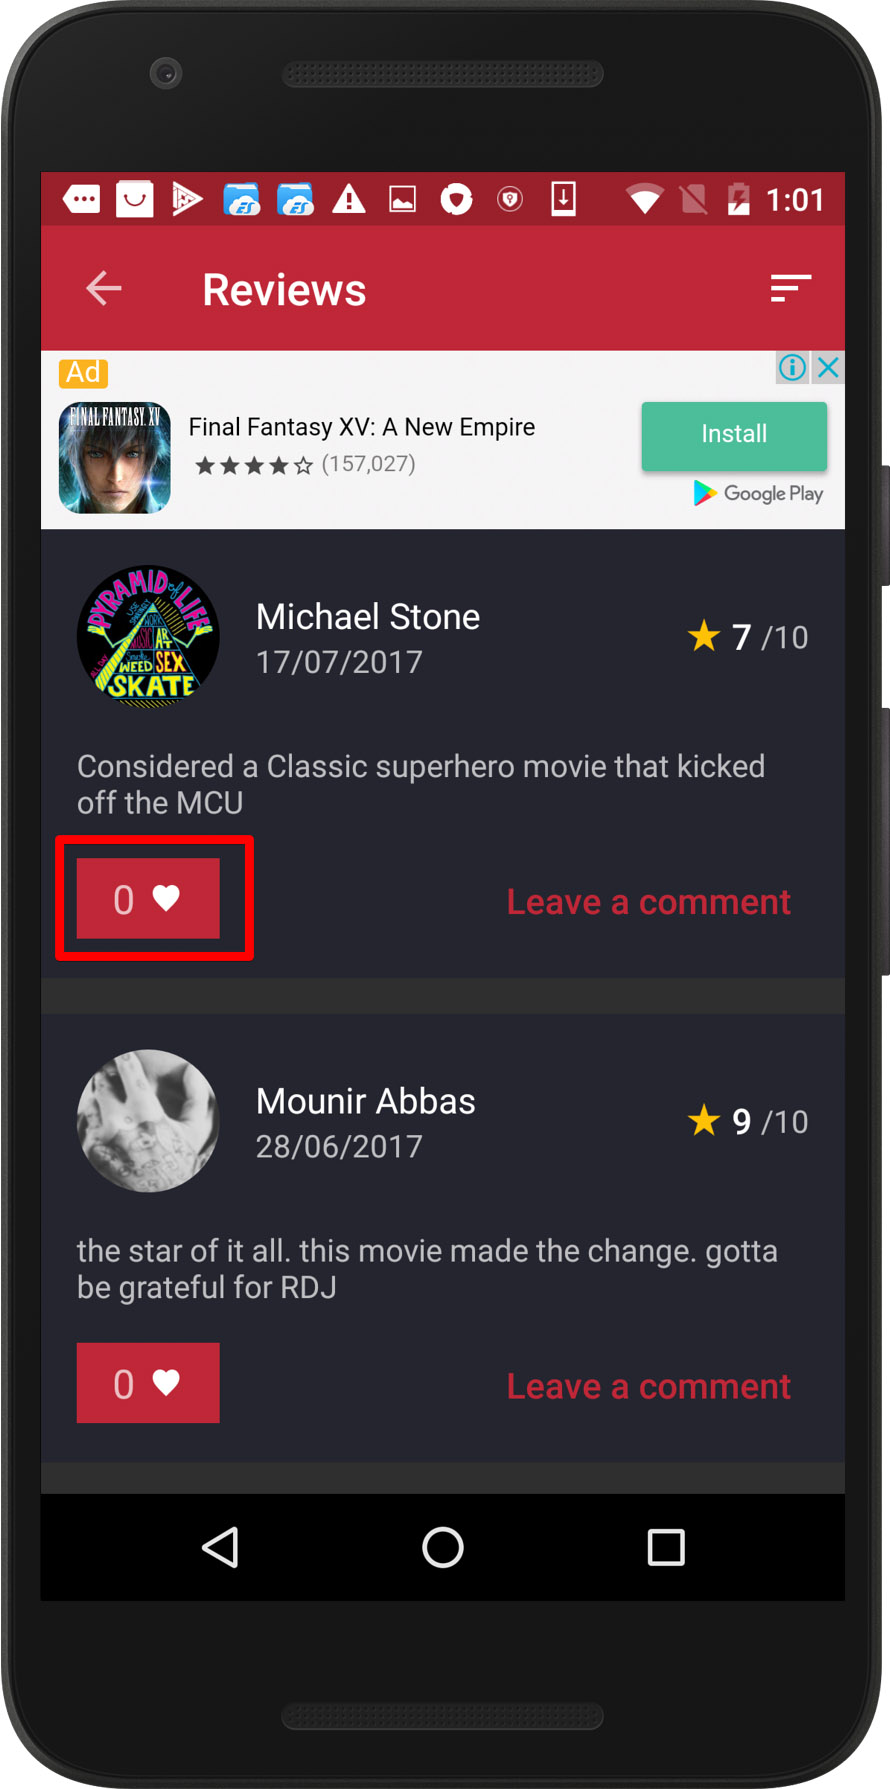 CineTrak app - review can be liked twice, screen 1 / Weekly bug crawl by QAwerk